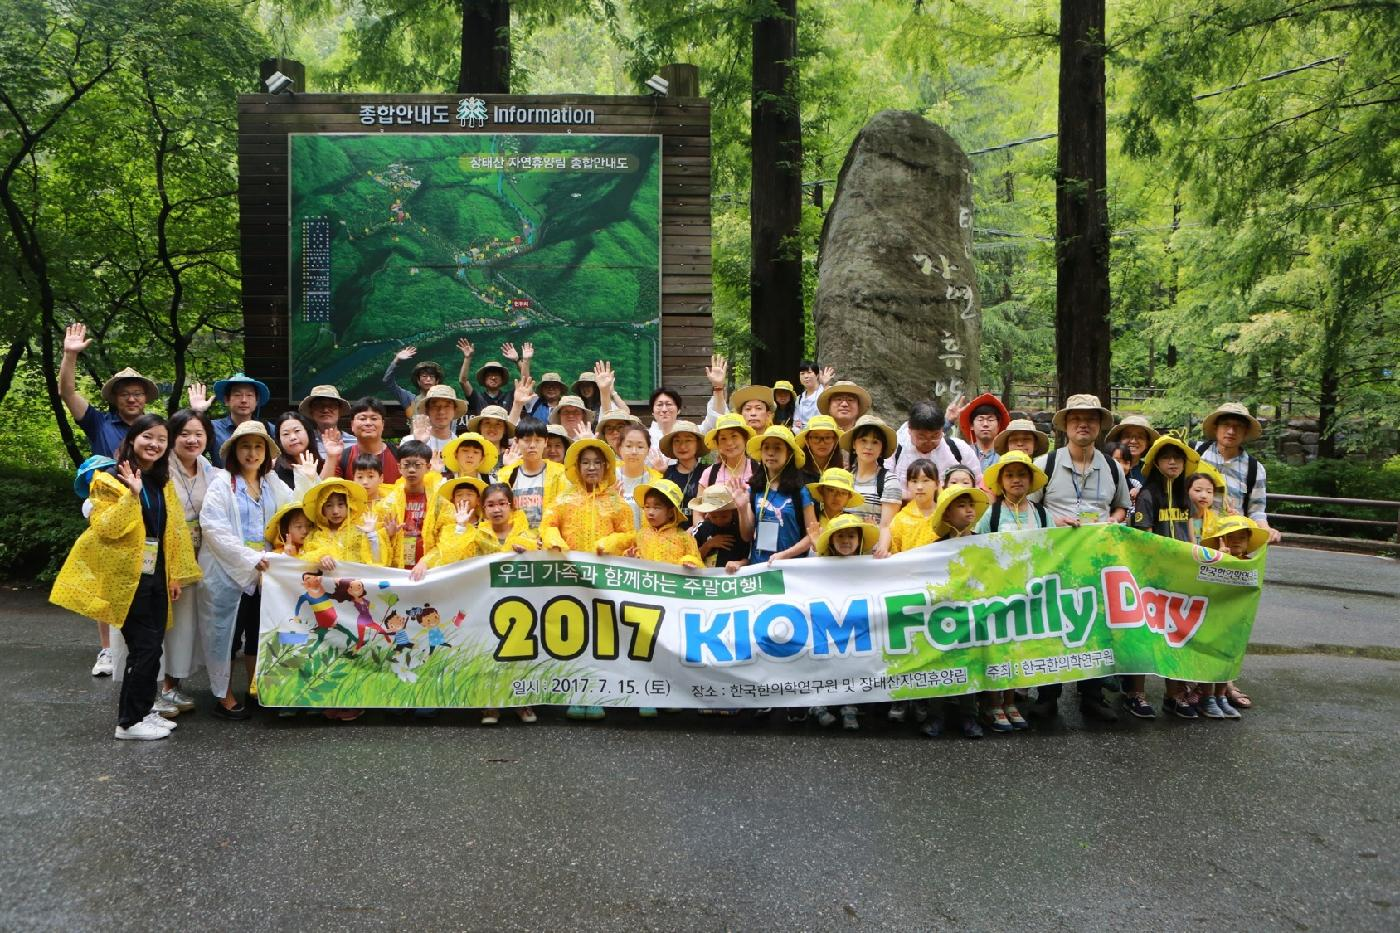 2017 KIOM Family Day